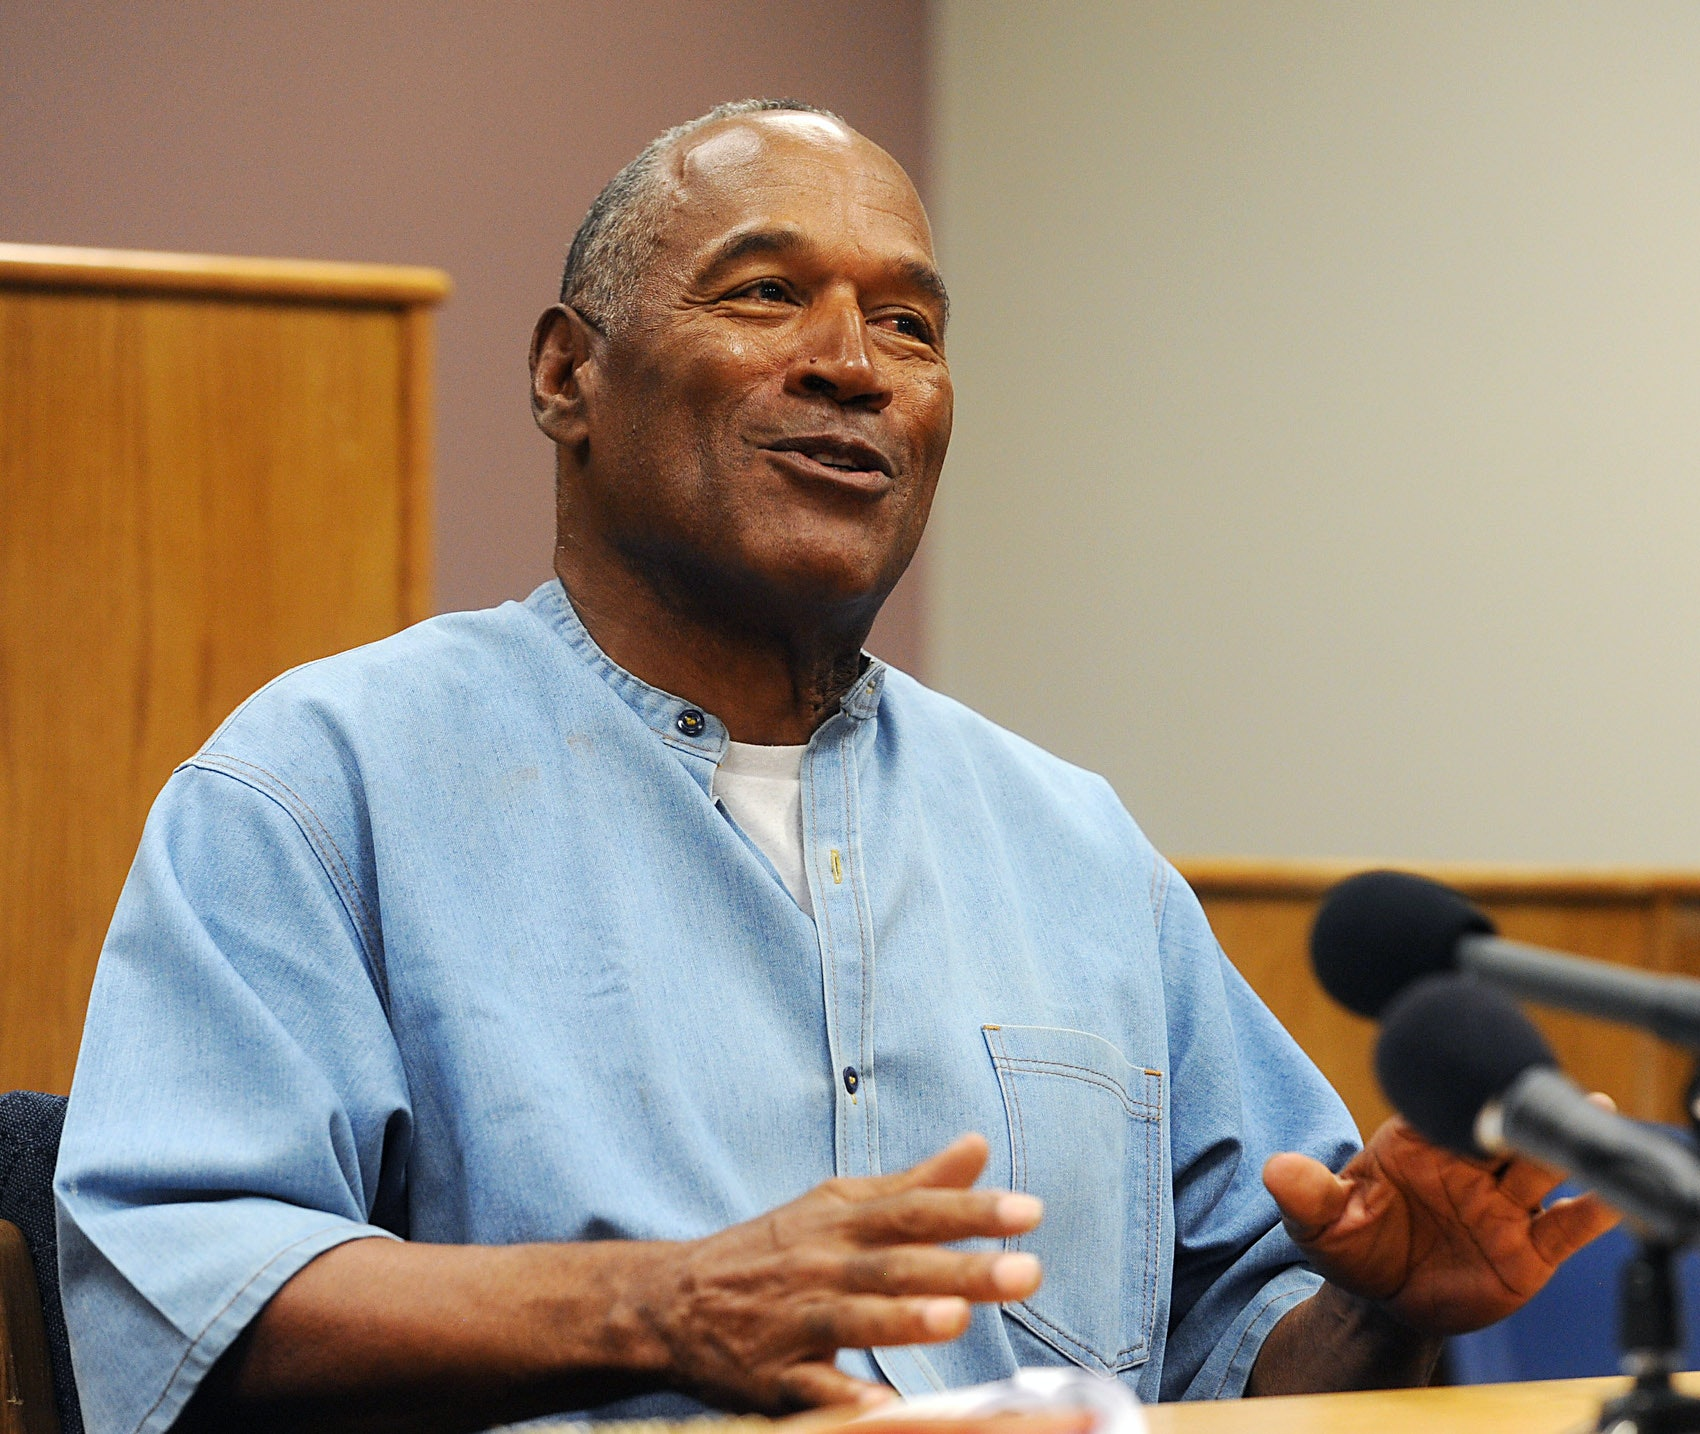 OJ Simpson's July 2017 parole hearing